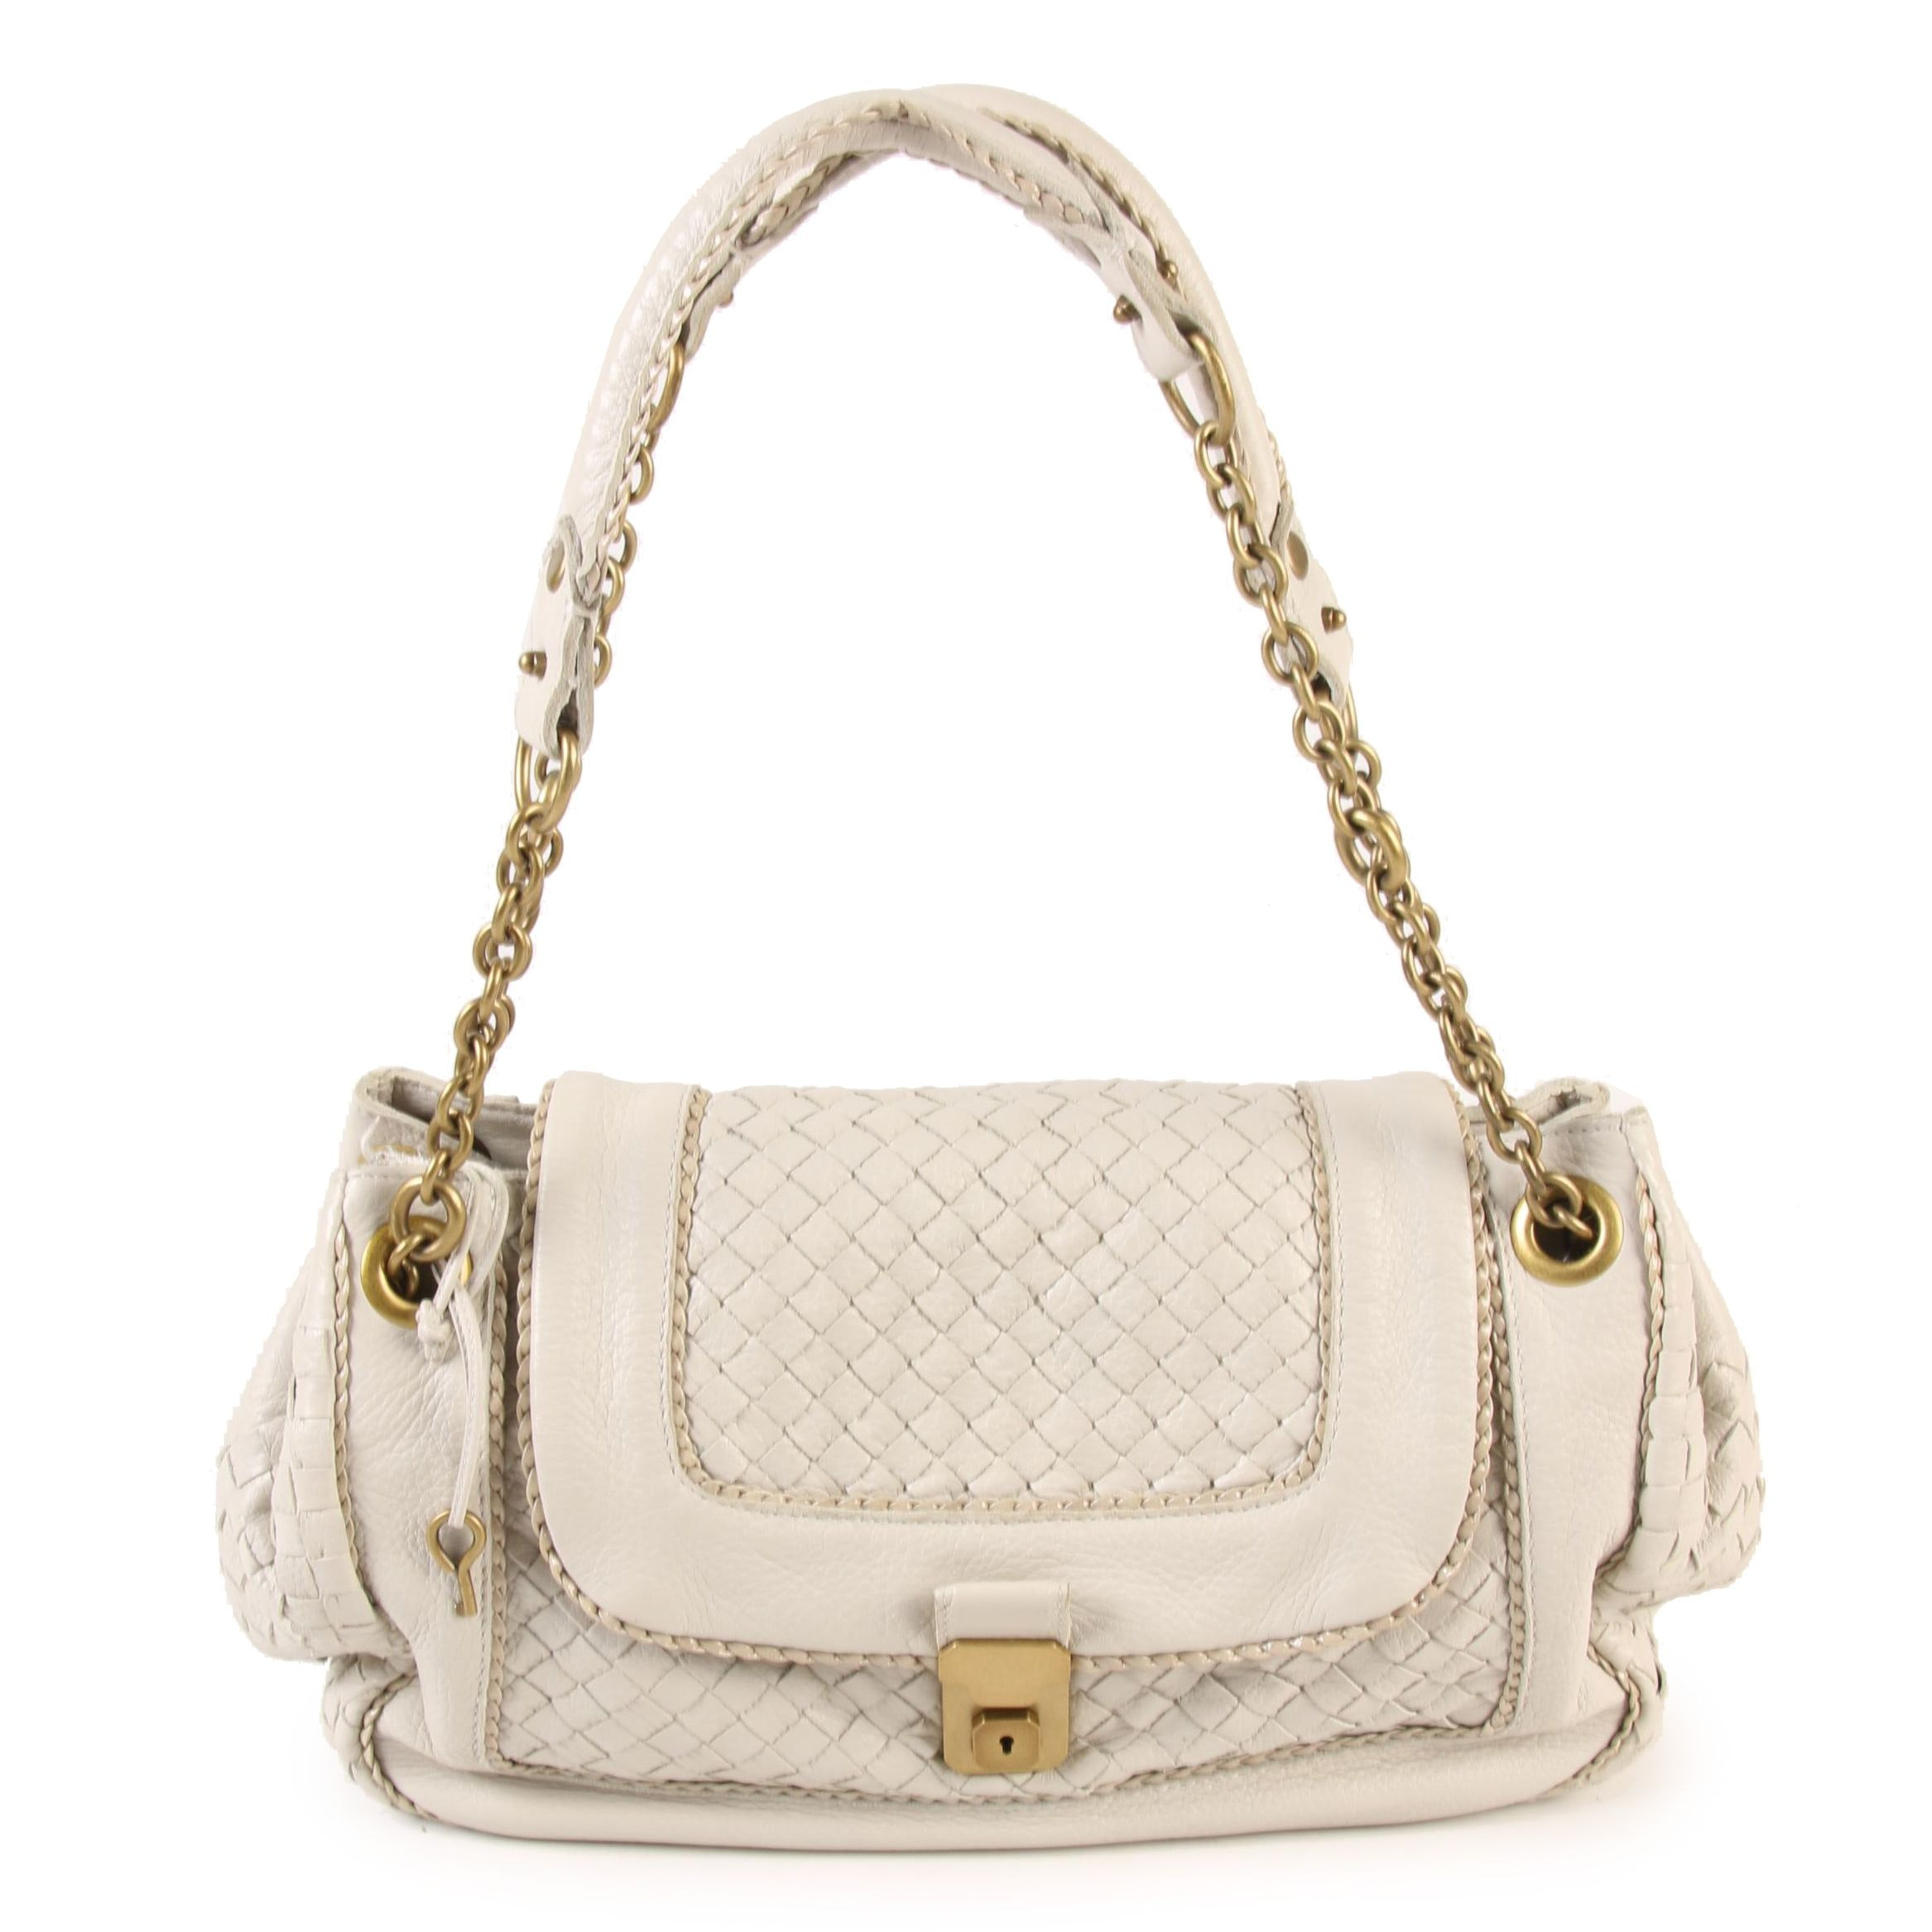 Bottega Veneta Flap Front Shoulder Bag with Intrecciato Woven Bone Leather